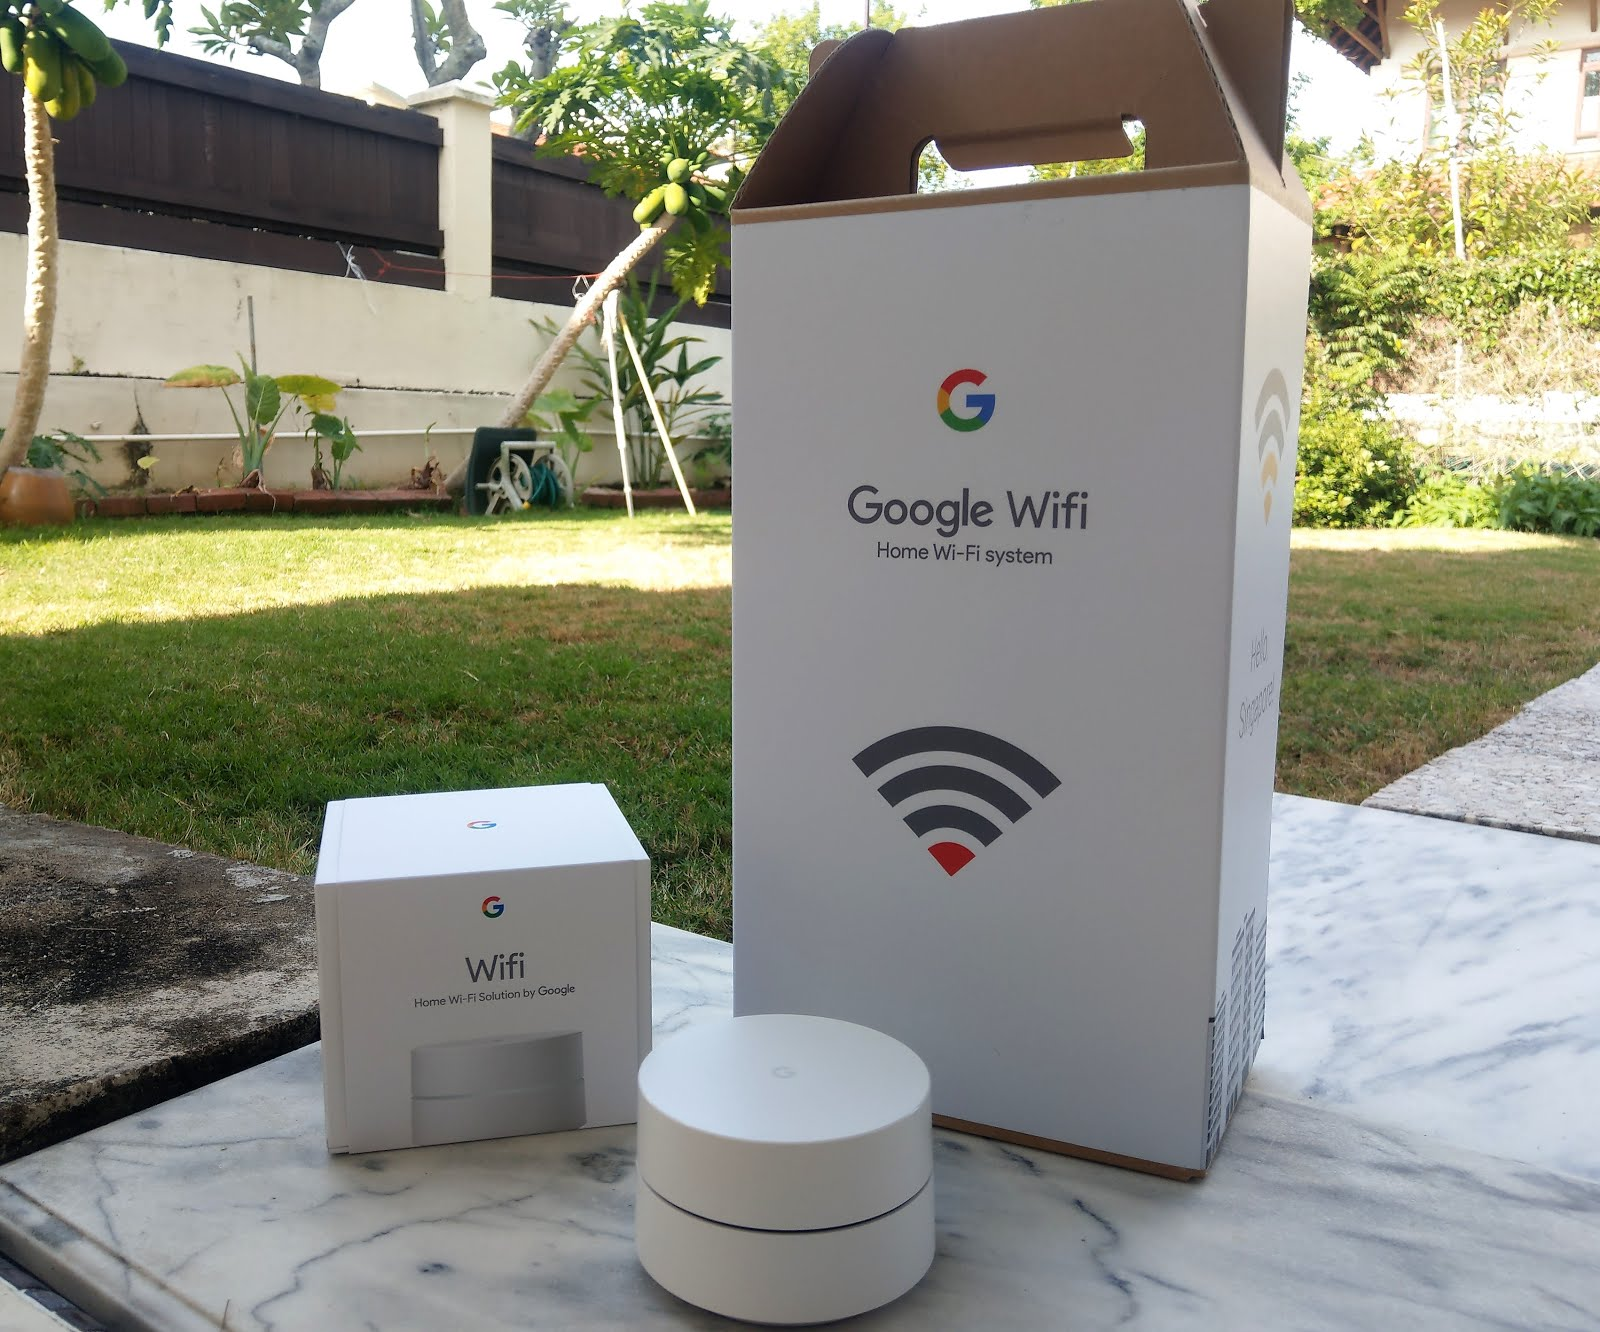 Google Wifi Review | Is It As Simple As Googling? - The Tech